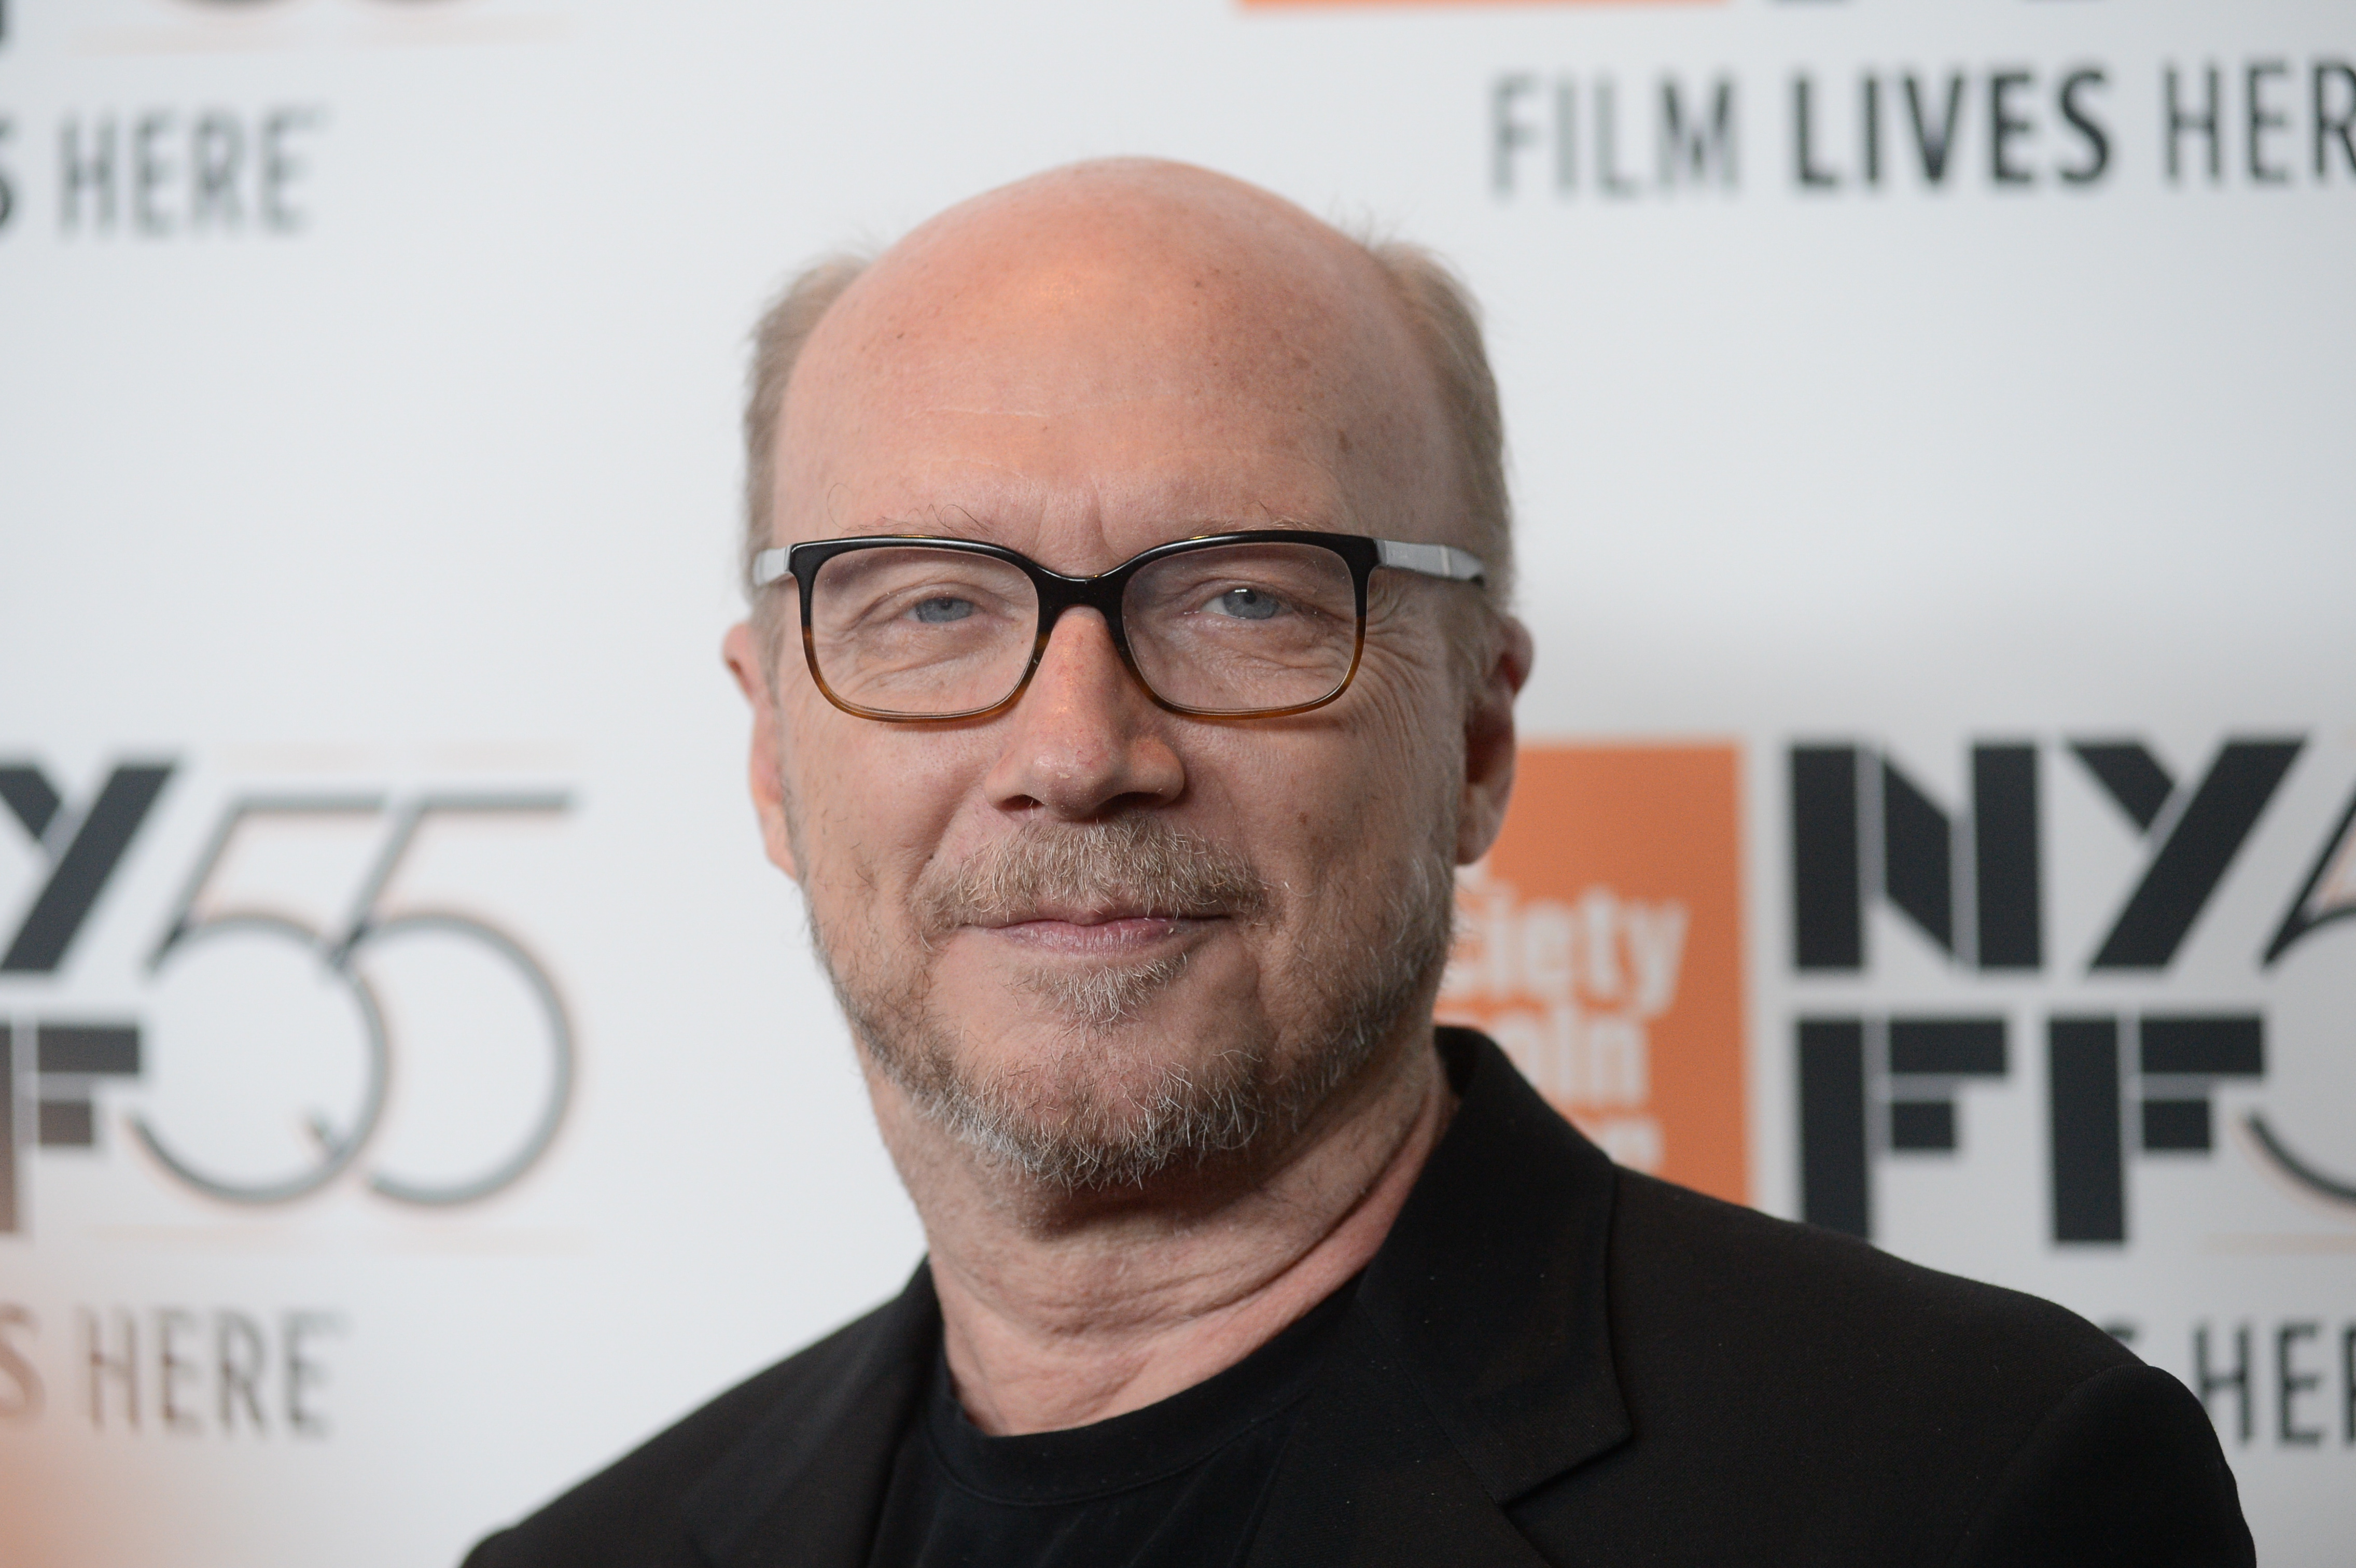 Filmmaker Paul Haggis Accused of Sexual Misconduct by Four Women